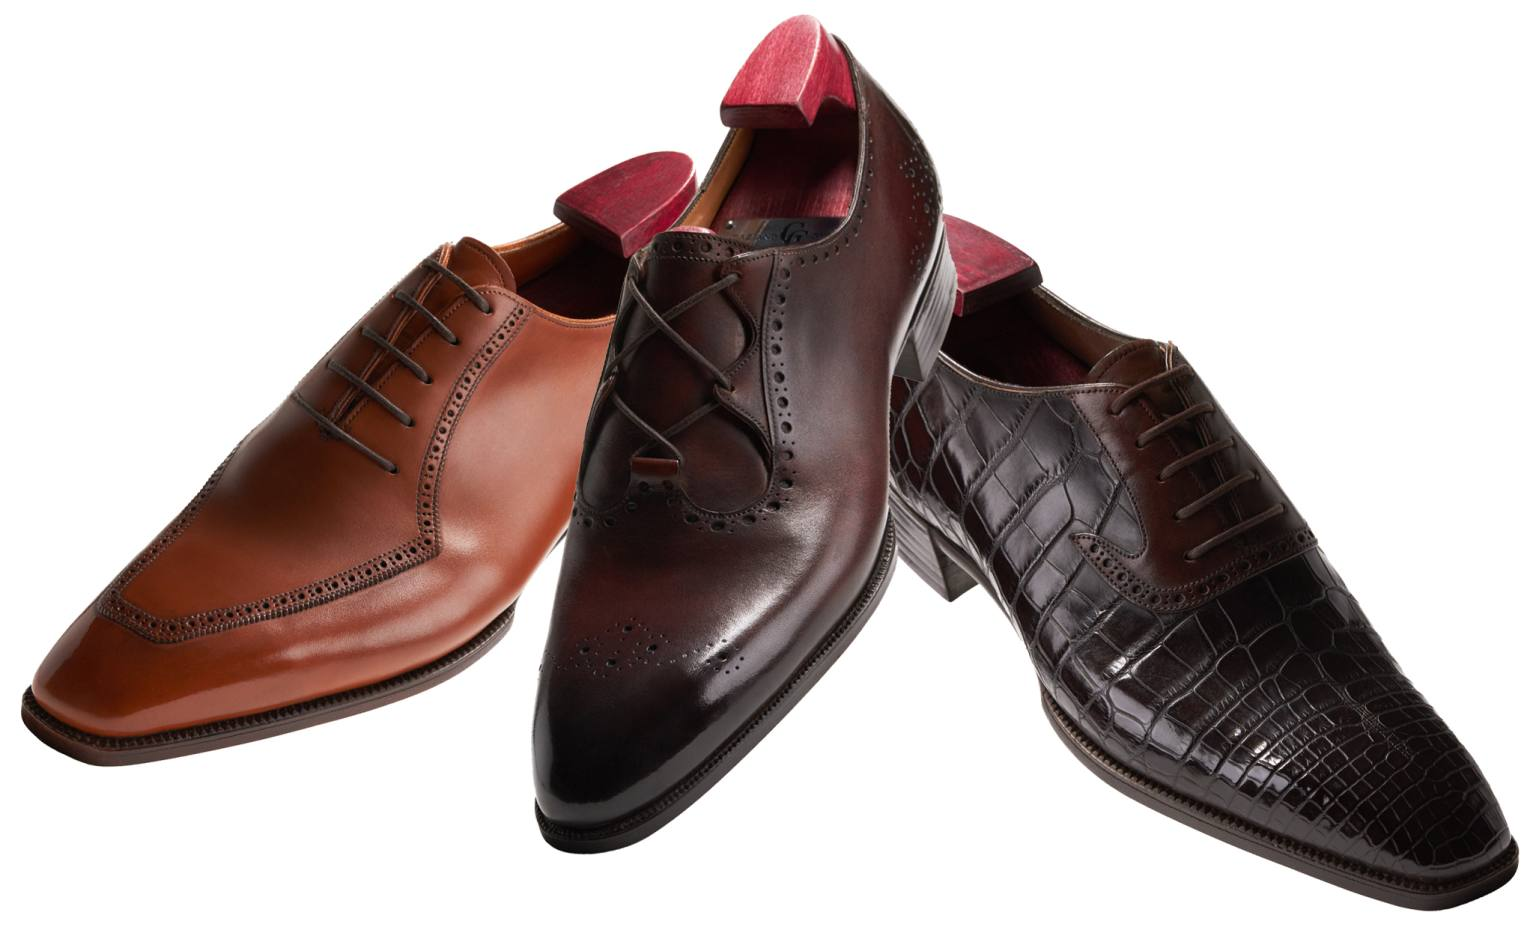 A first bespoke pair of Gaziano & Girling shoes will take around 12 months to produce for a client from an initial fitting